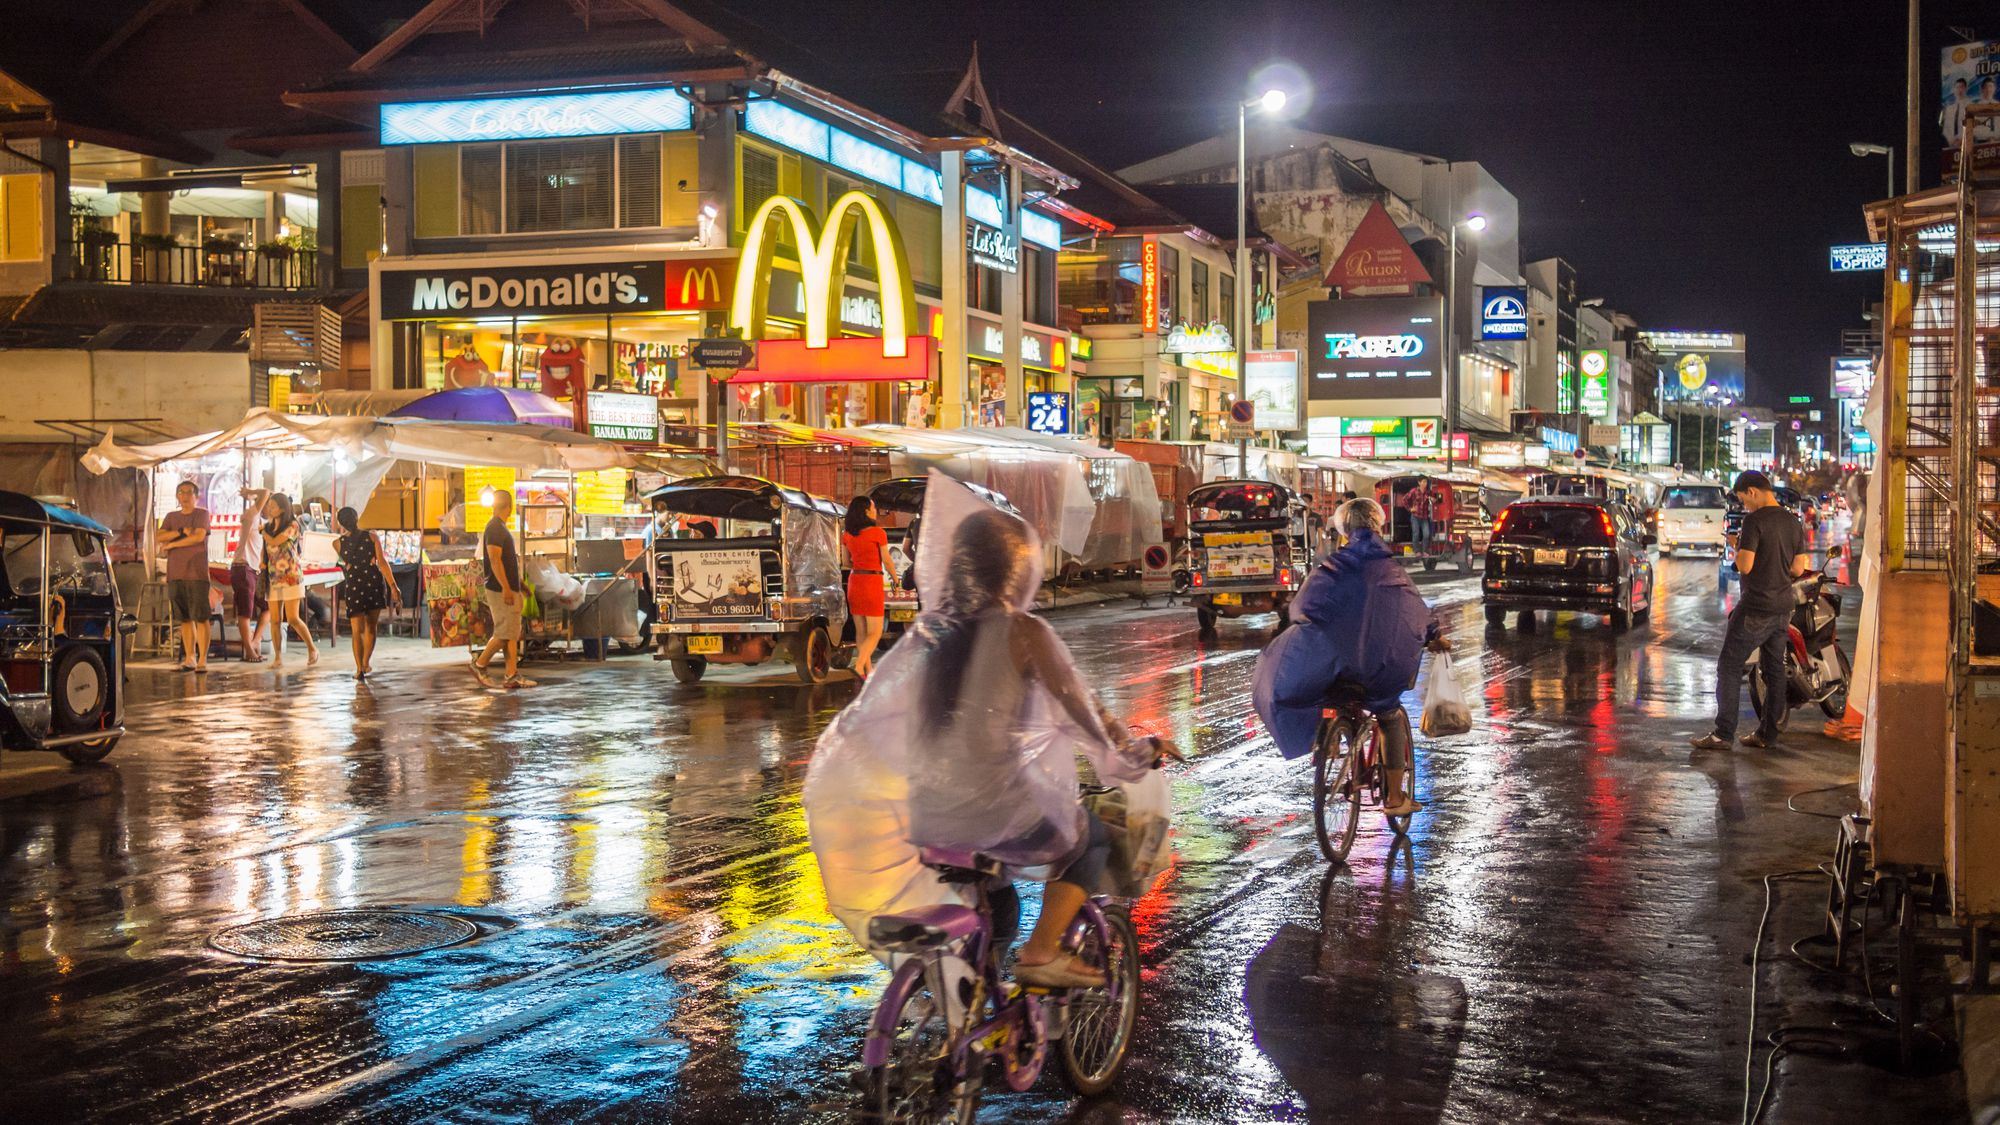 Disadvantages of traveling to Thailand in the monsoon season